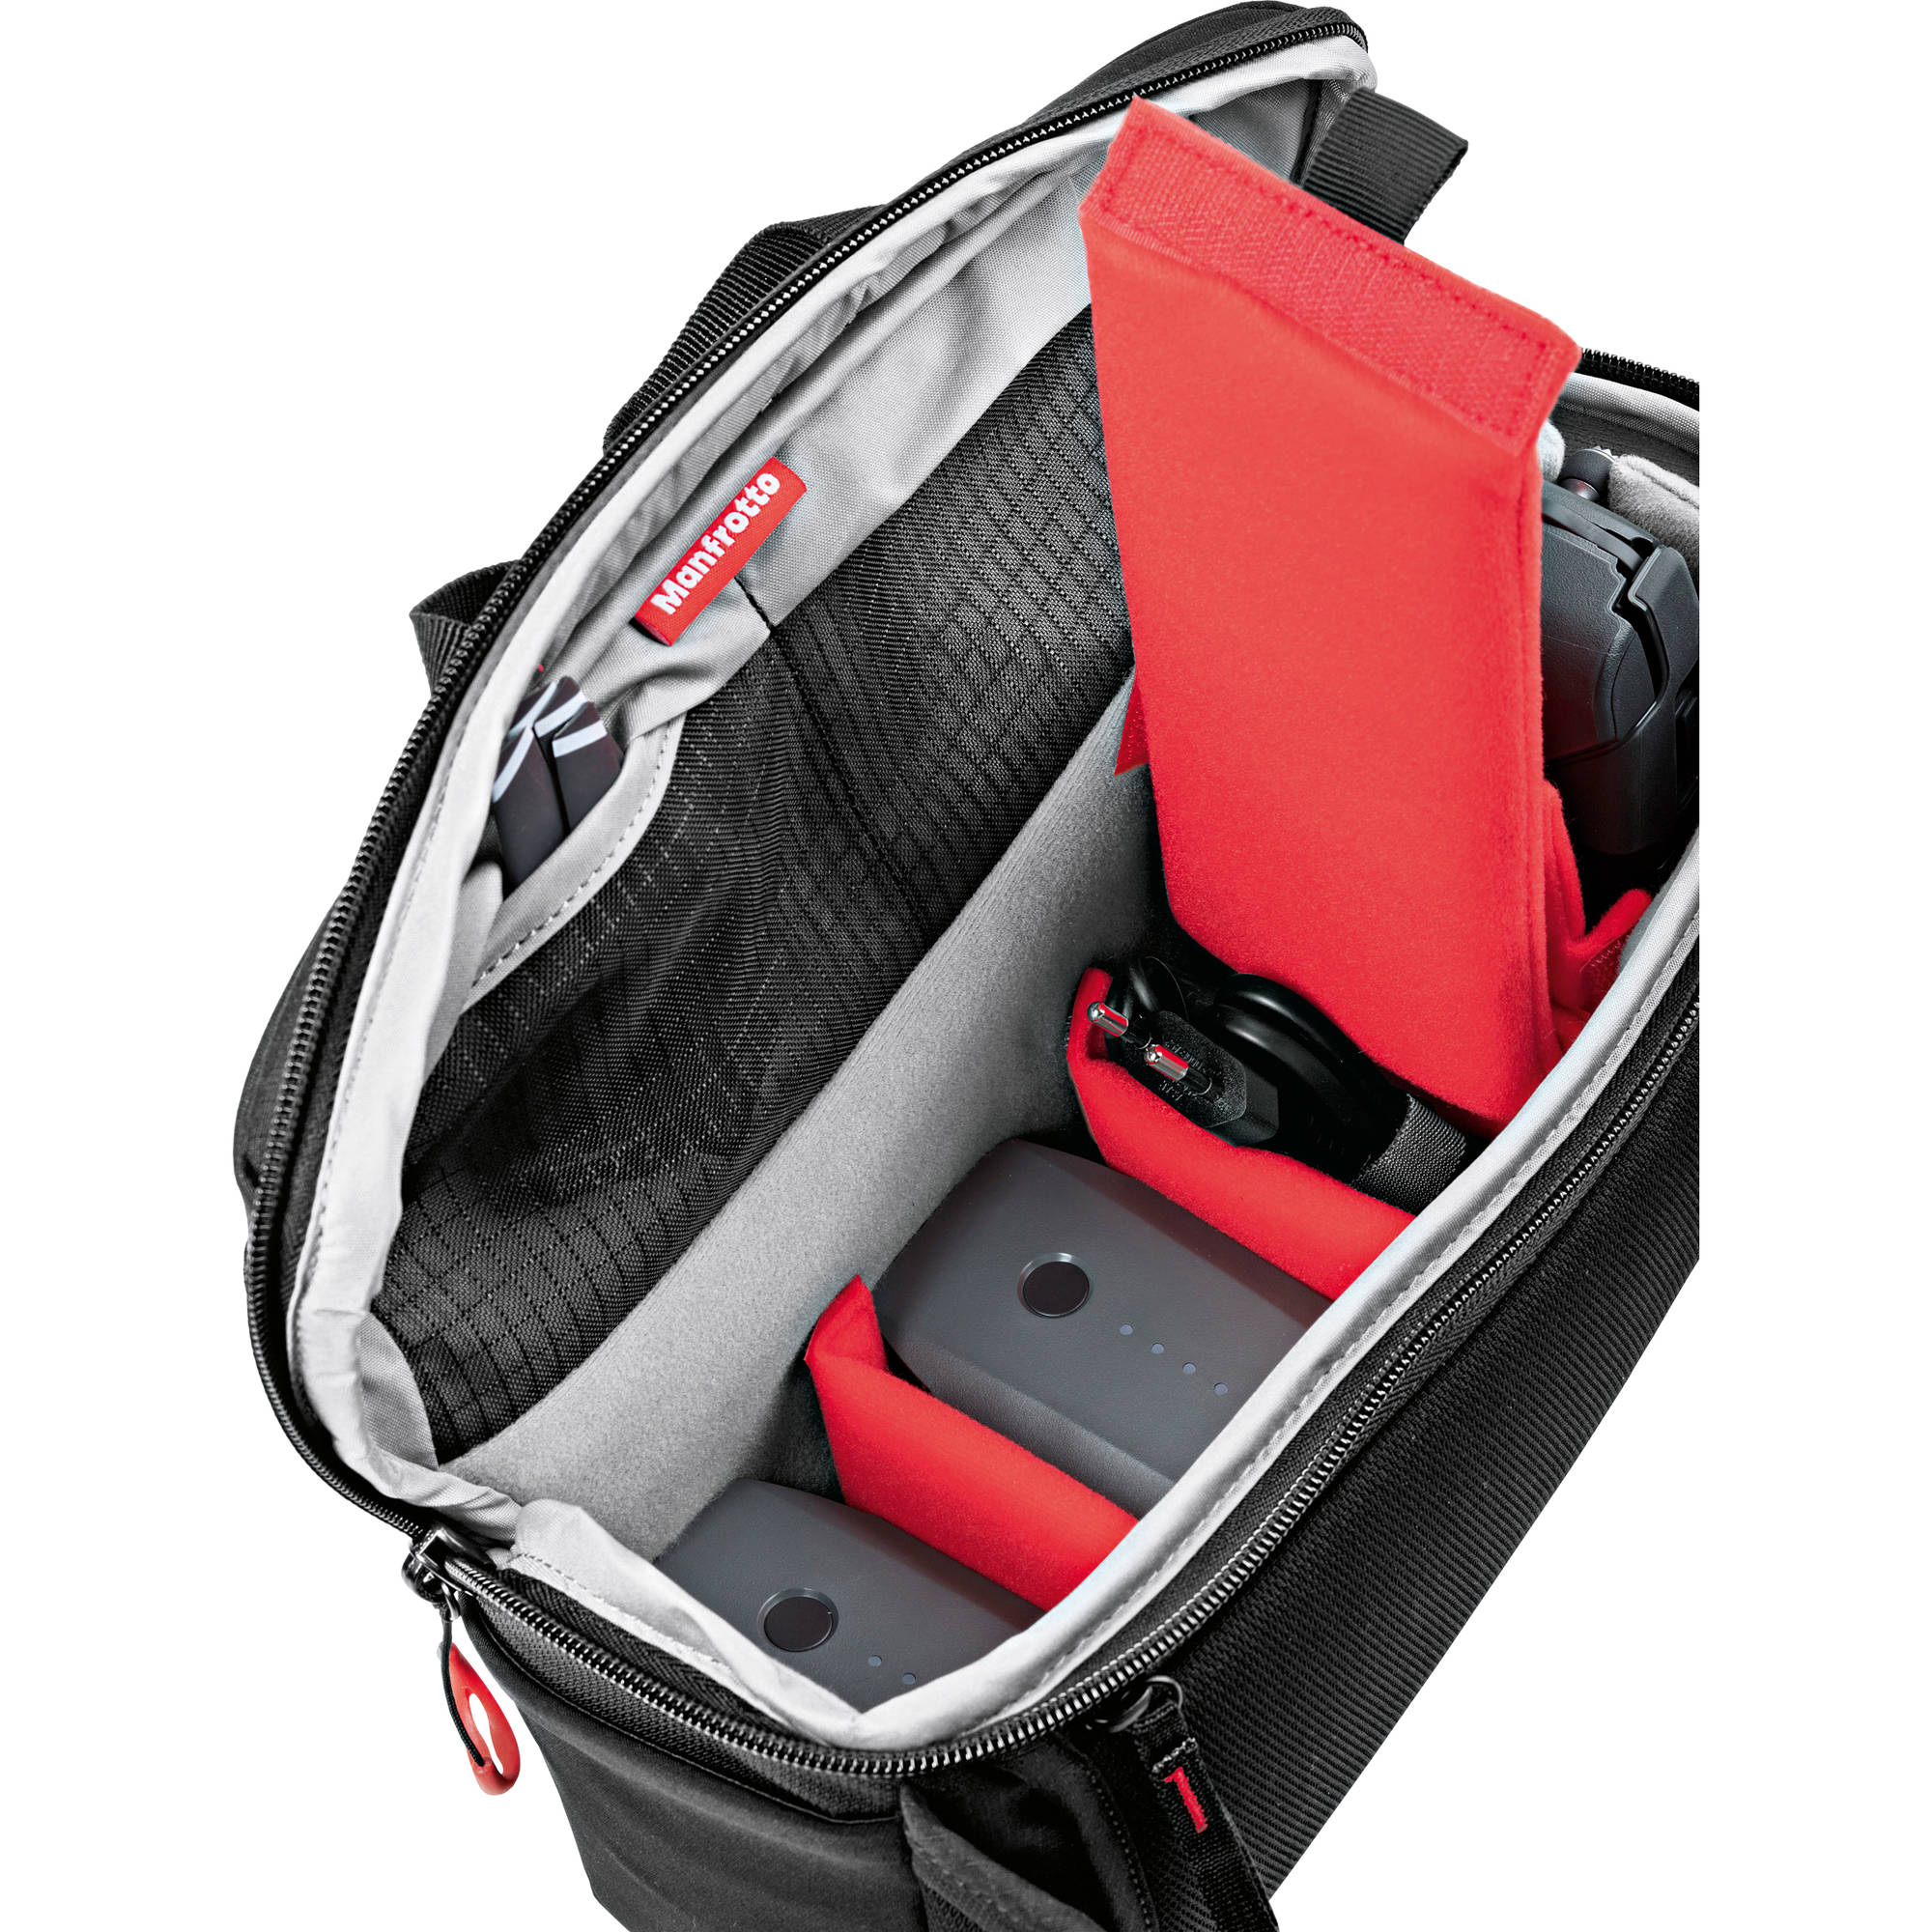 Manfrotto Aviator M1 Sling Bag for DJI Mavic Pro and Mavic Air